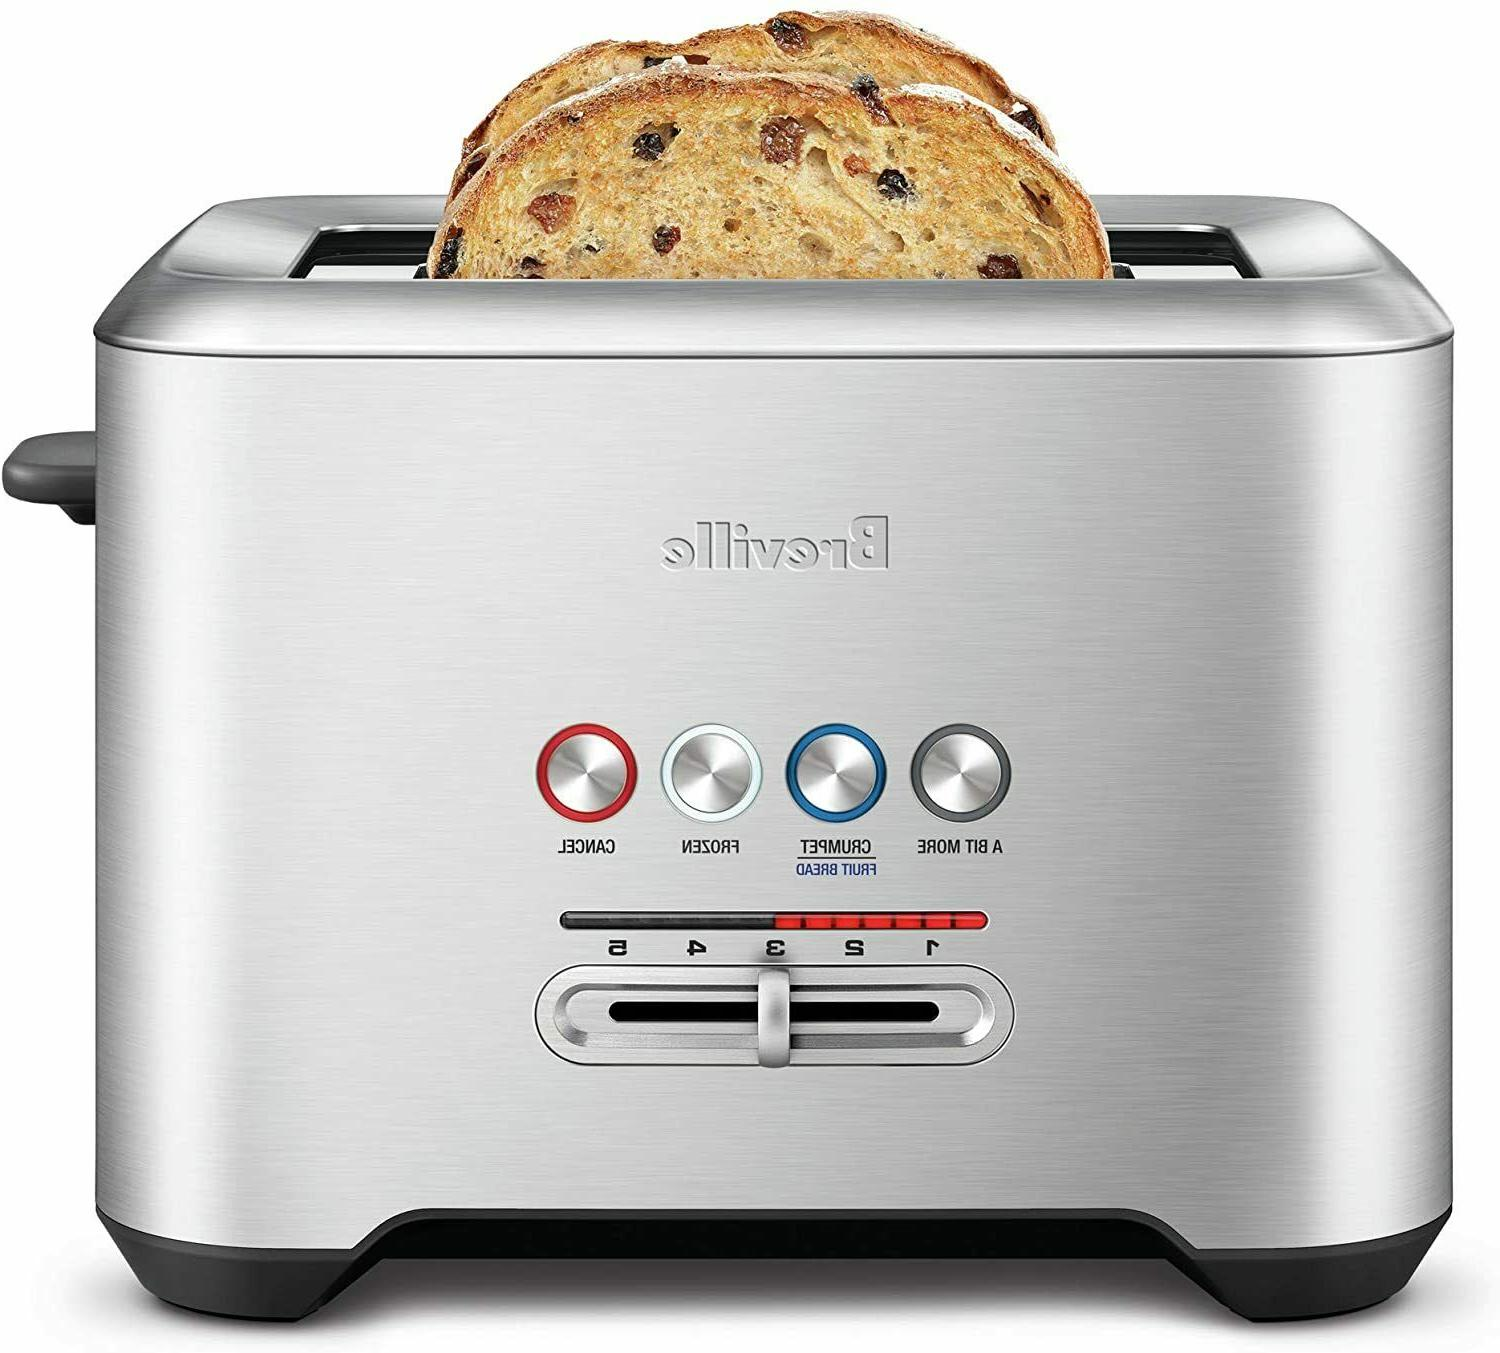 Breville Bit More 4-Slice Toaster, Brushed Stainless Steel, Free Shipping